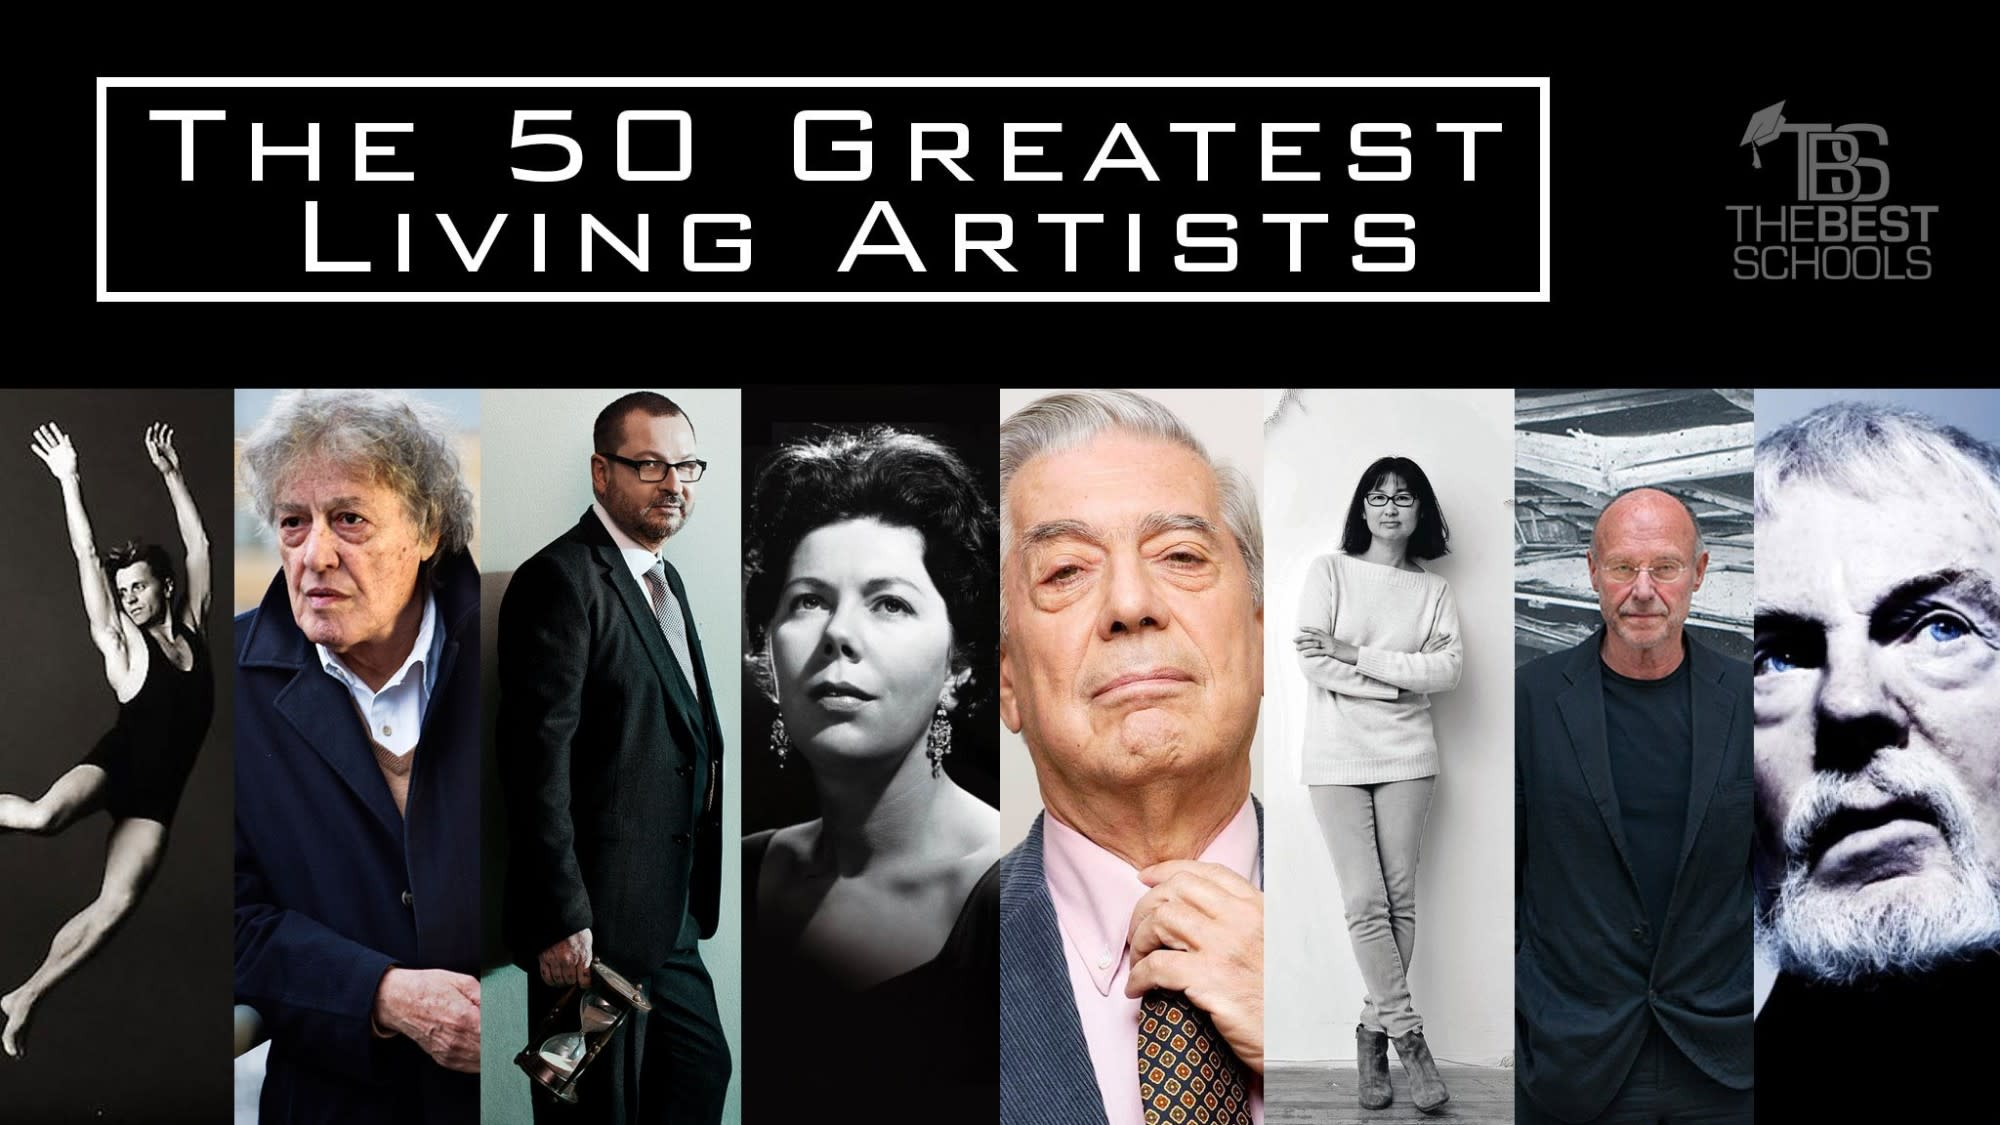 The 50 Greatest Living Artists: Film | TheBestSchools org